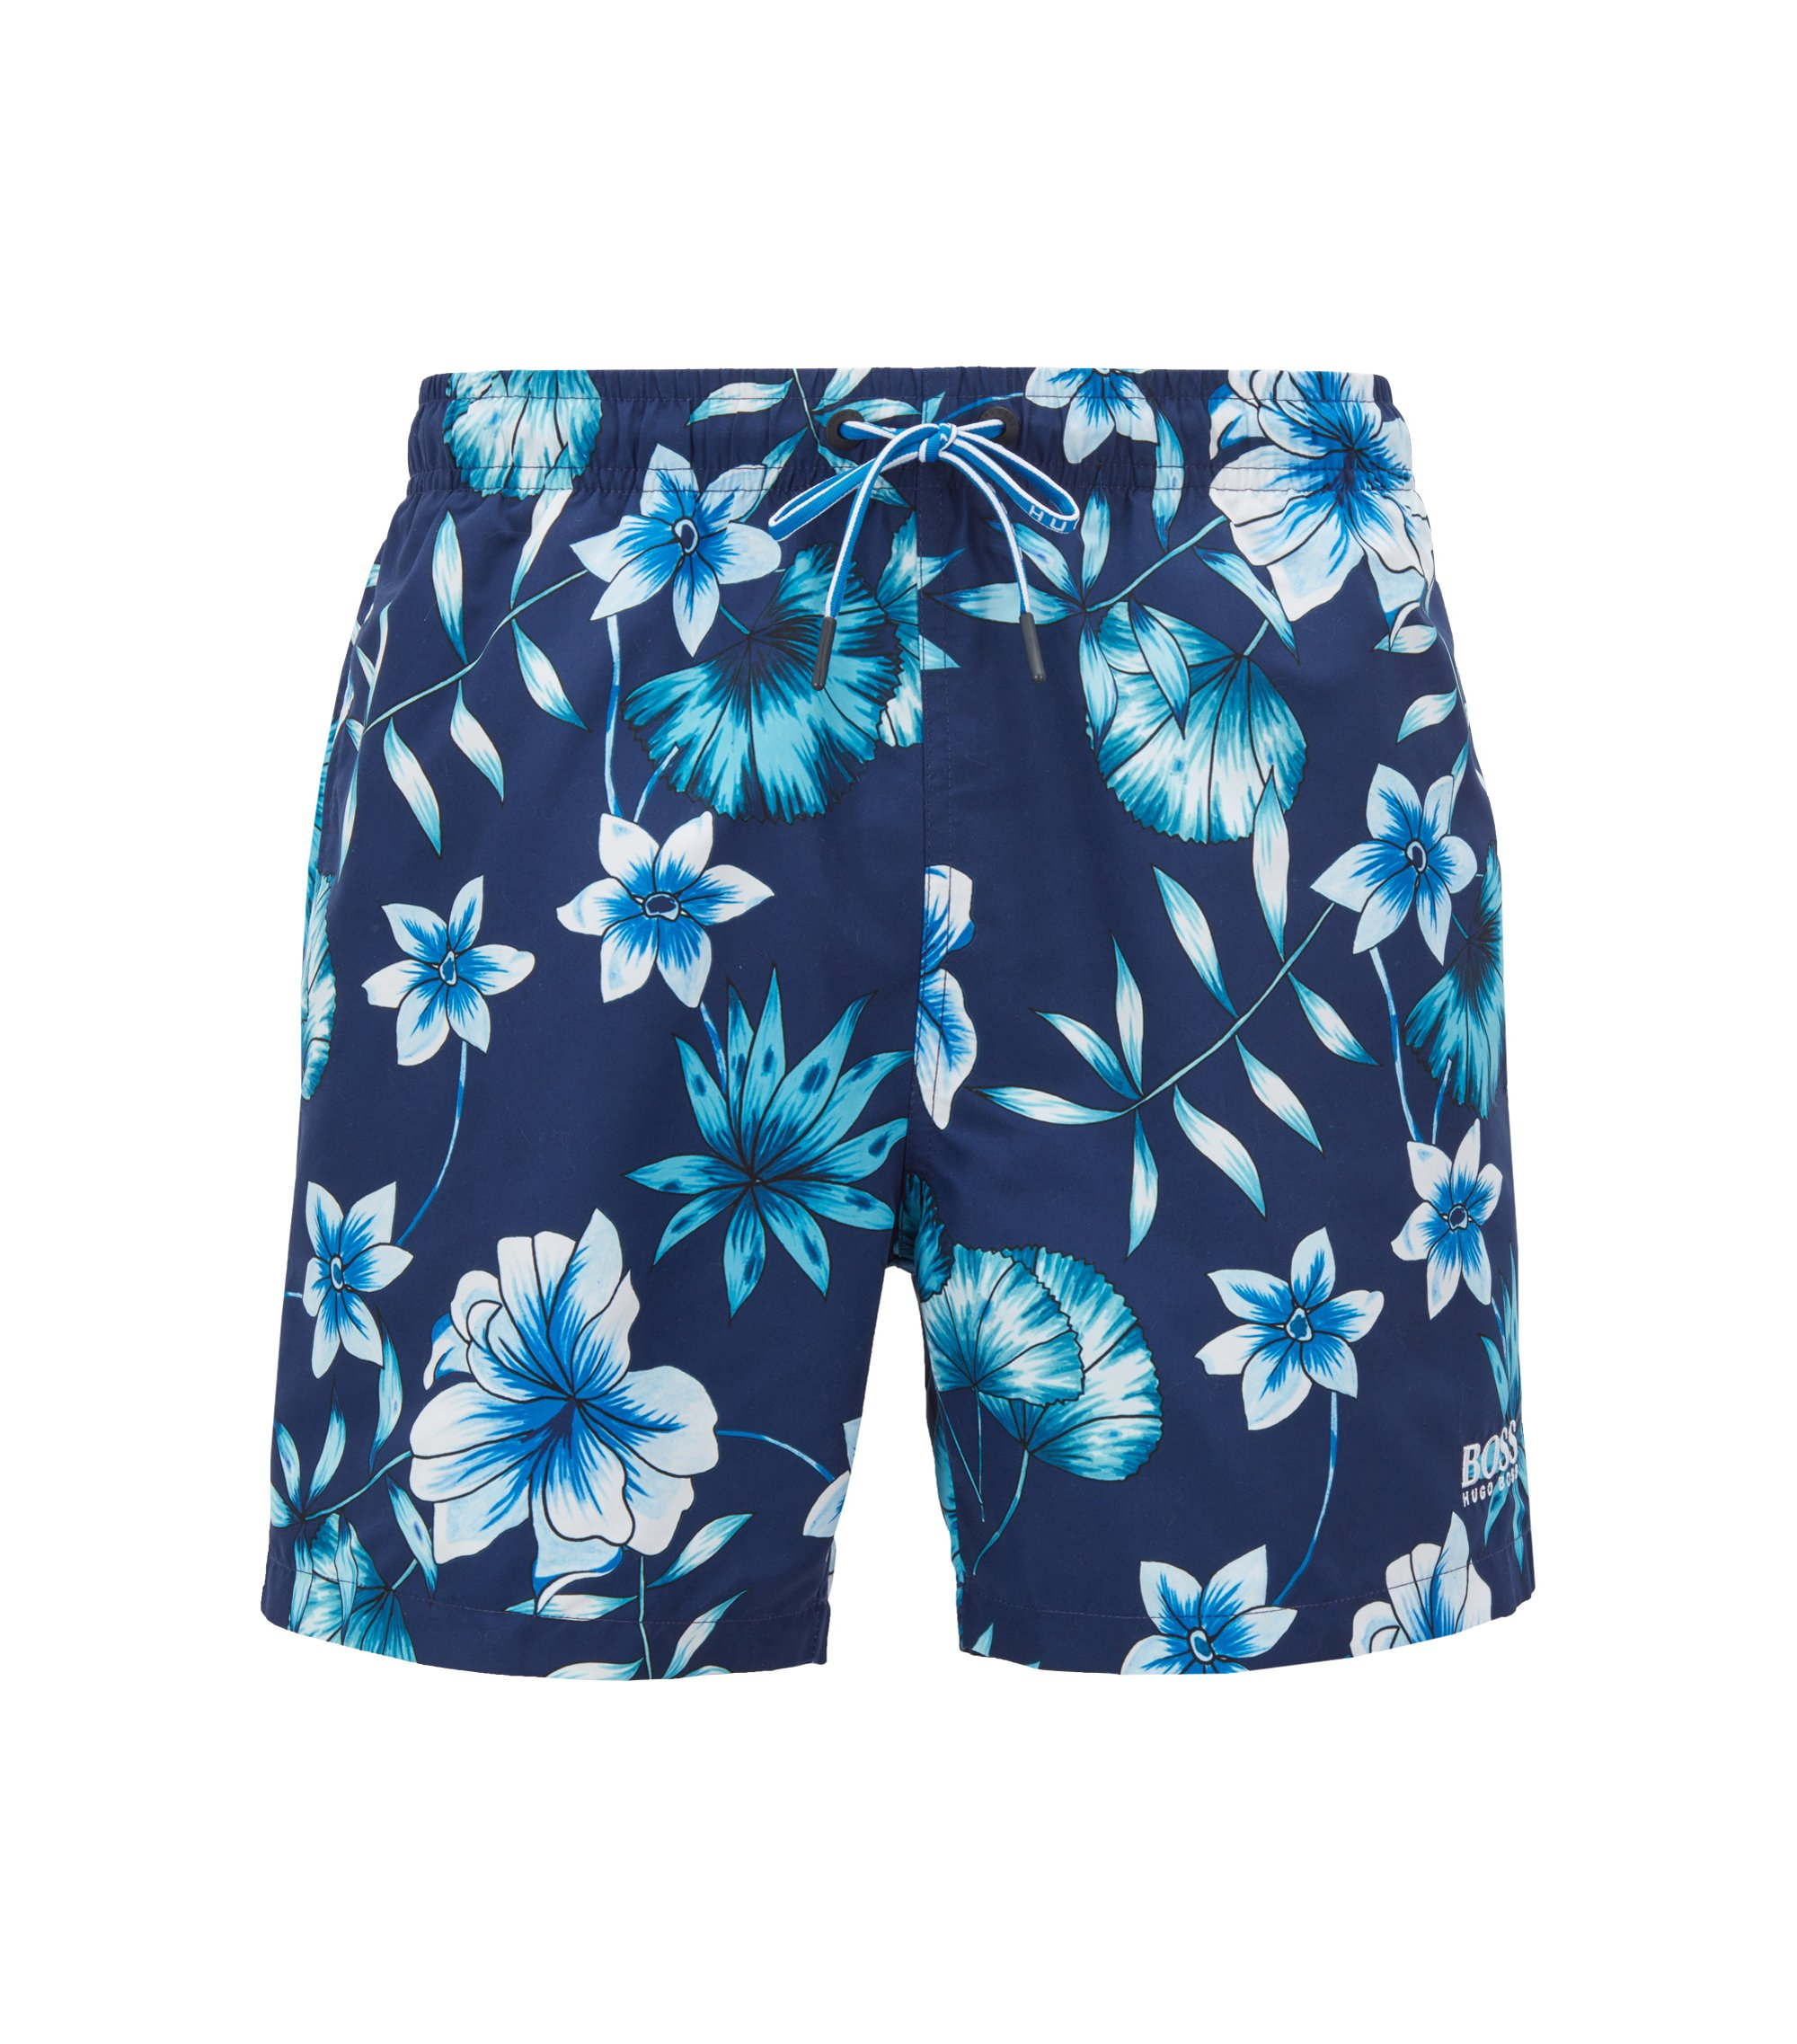 Floral-print swim shorts in quick-drying technical fabric, Open Blue